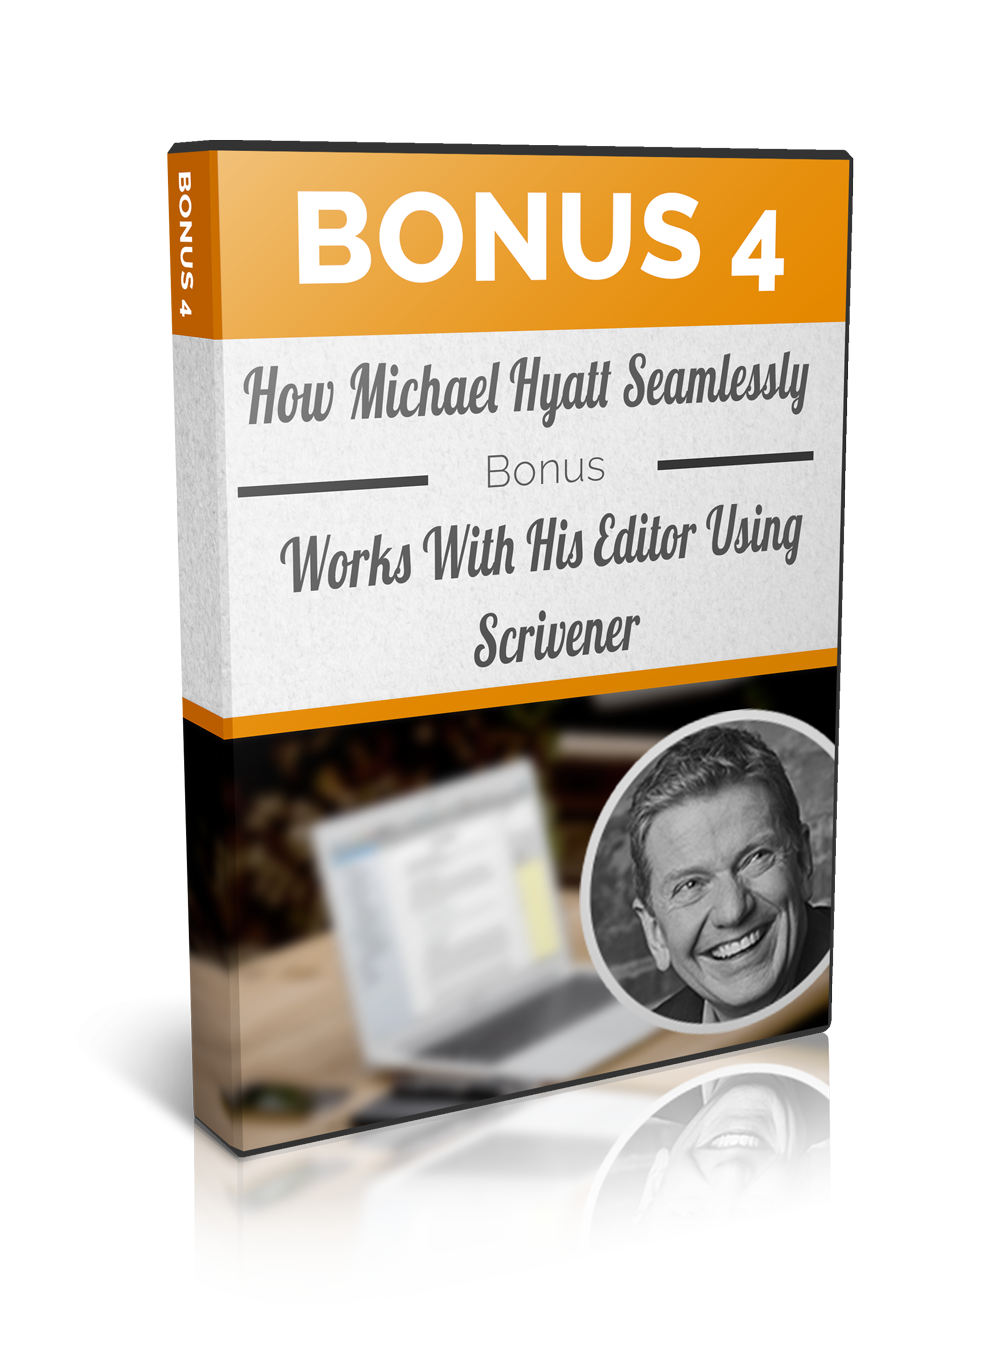 www.learn-scrivener-fast.com Scrivener Training & Coaching Course - Bonus 4 - Michael Hyatt Behind The scenes Reveals How He Uses Scrivener To Write So Effectively & Efficiently